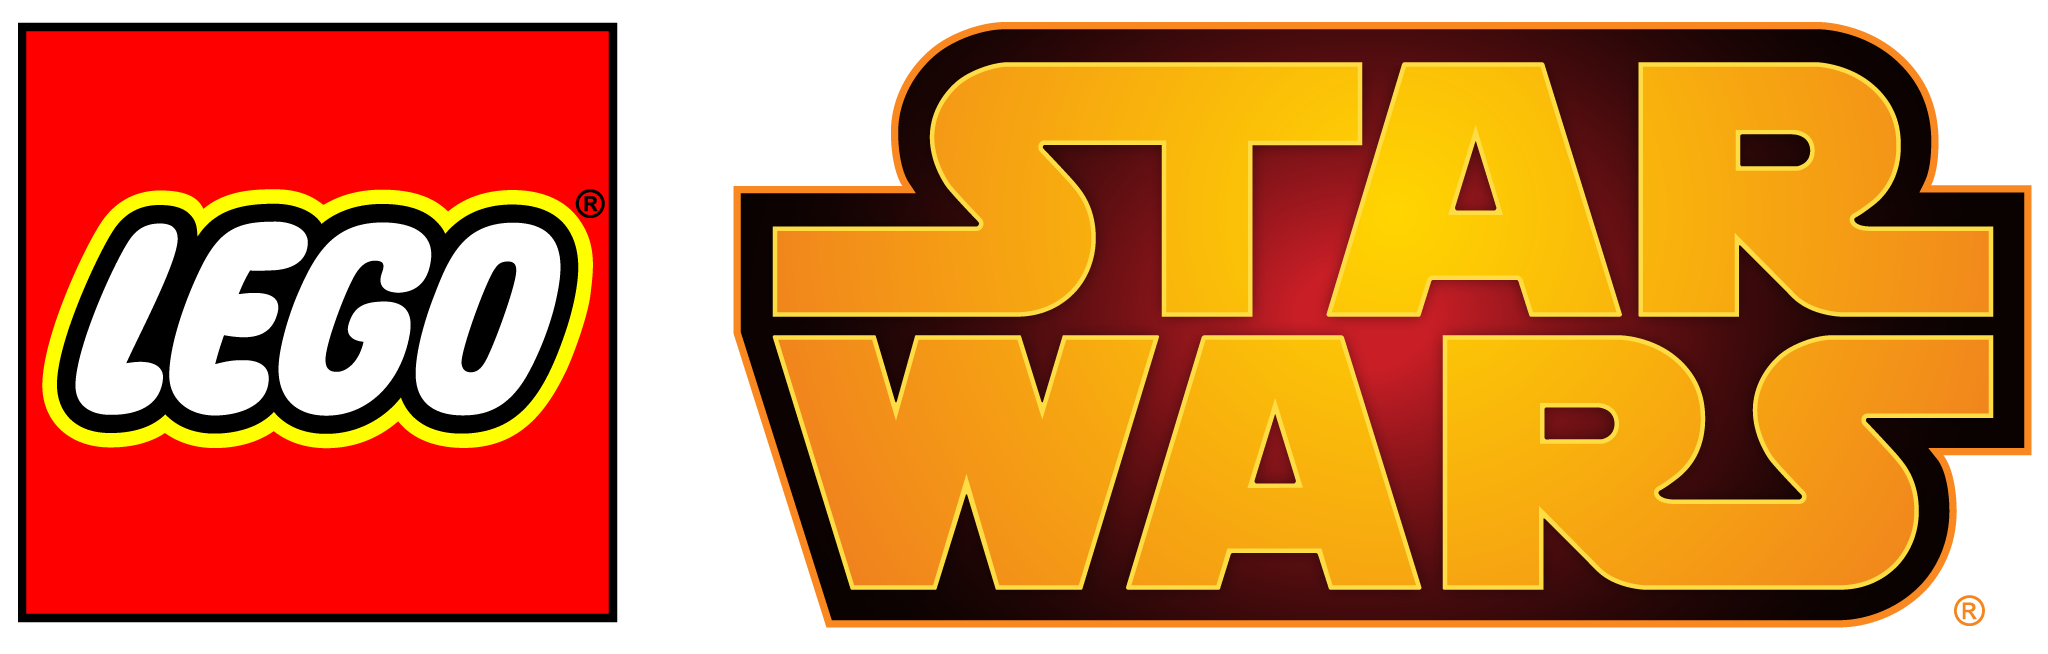 star wars logo #991